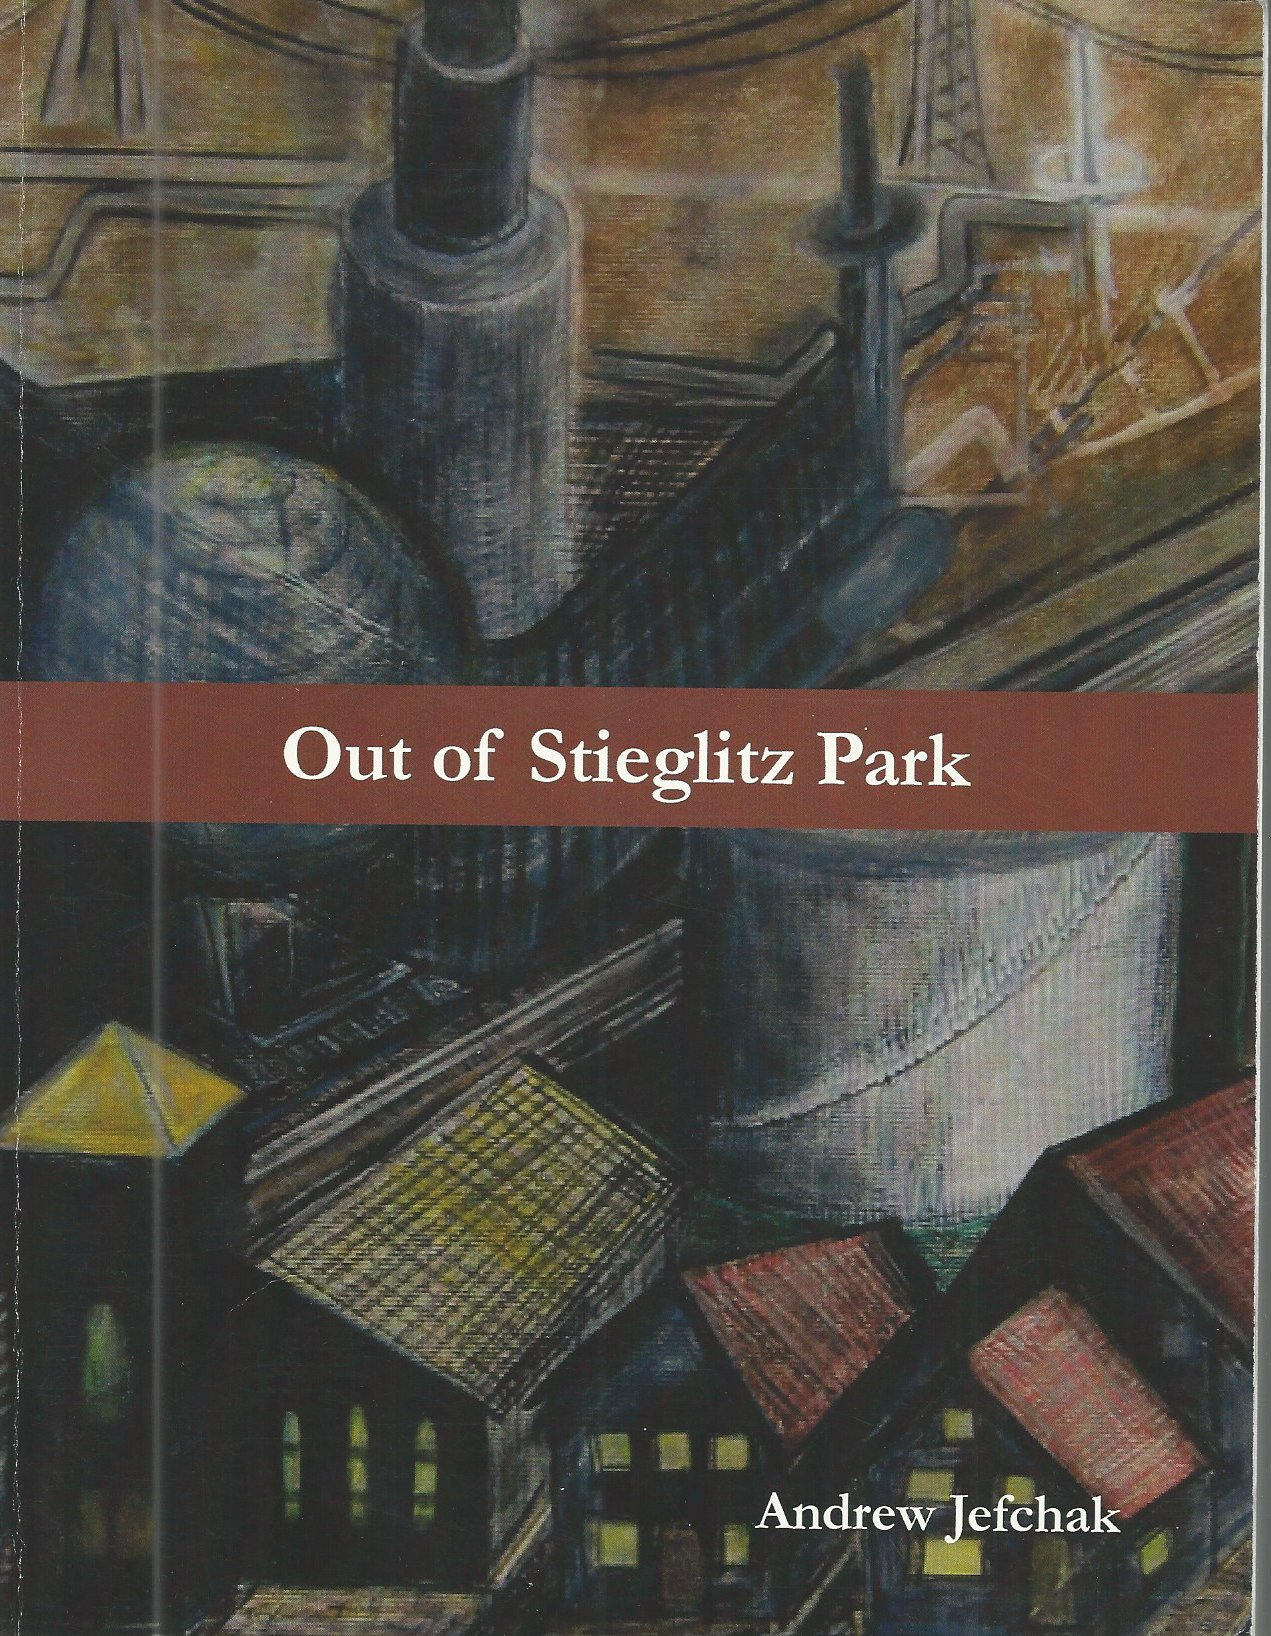 Out of Stieglitz Park by Andrew Jefchak,  2011